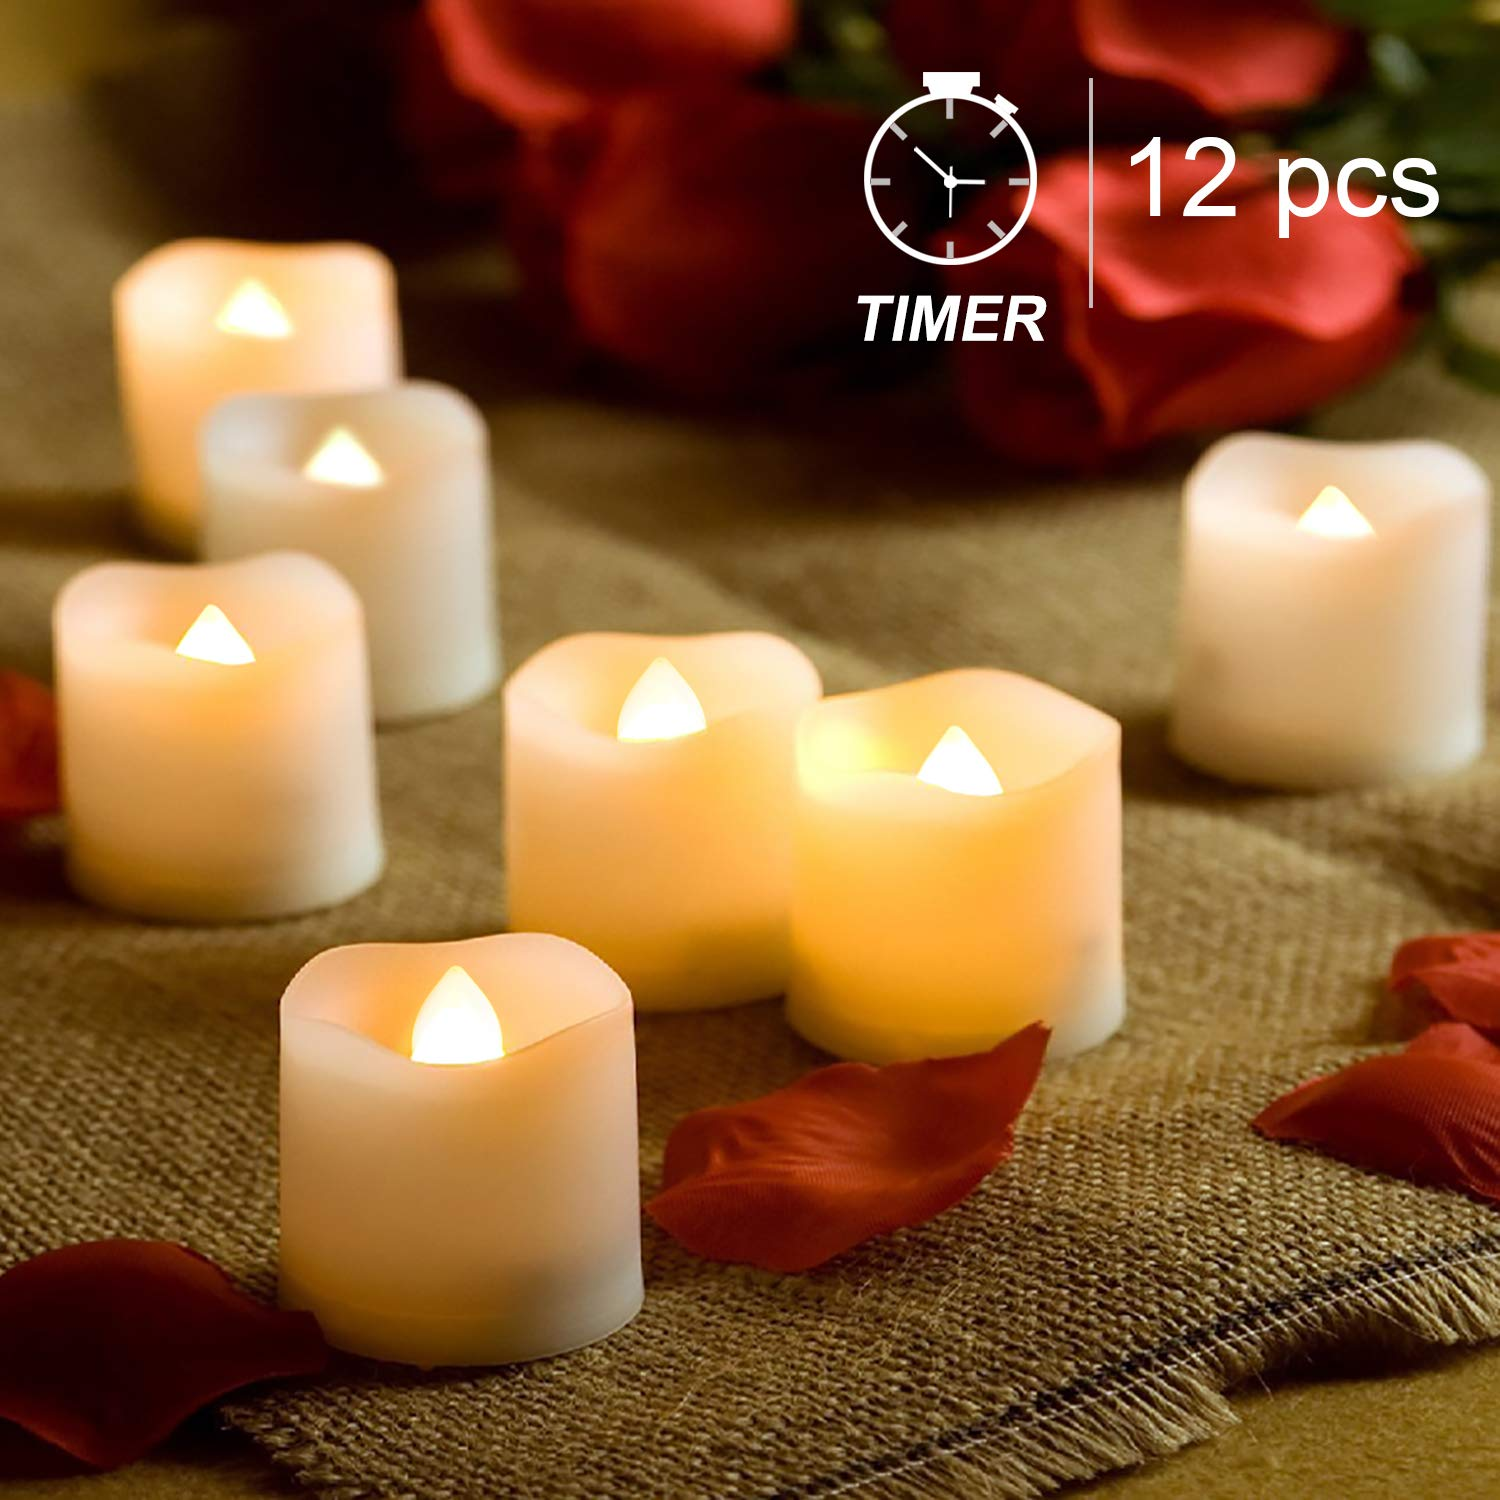 Homemory Timer Tea Lights Bulk, Set of 12 Warm White Flameless Candles, Flickering Battery Operated LED Tealights Candles, 1.57'' D x 1.37'' H, Ideal for Morrocan Lamps, Mason Jars, Pumpkin Lantern by Homemory